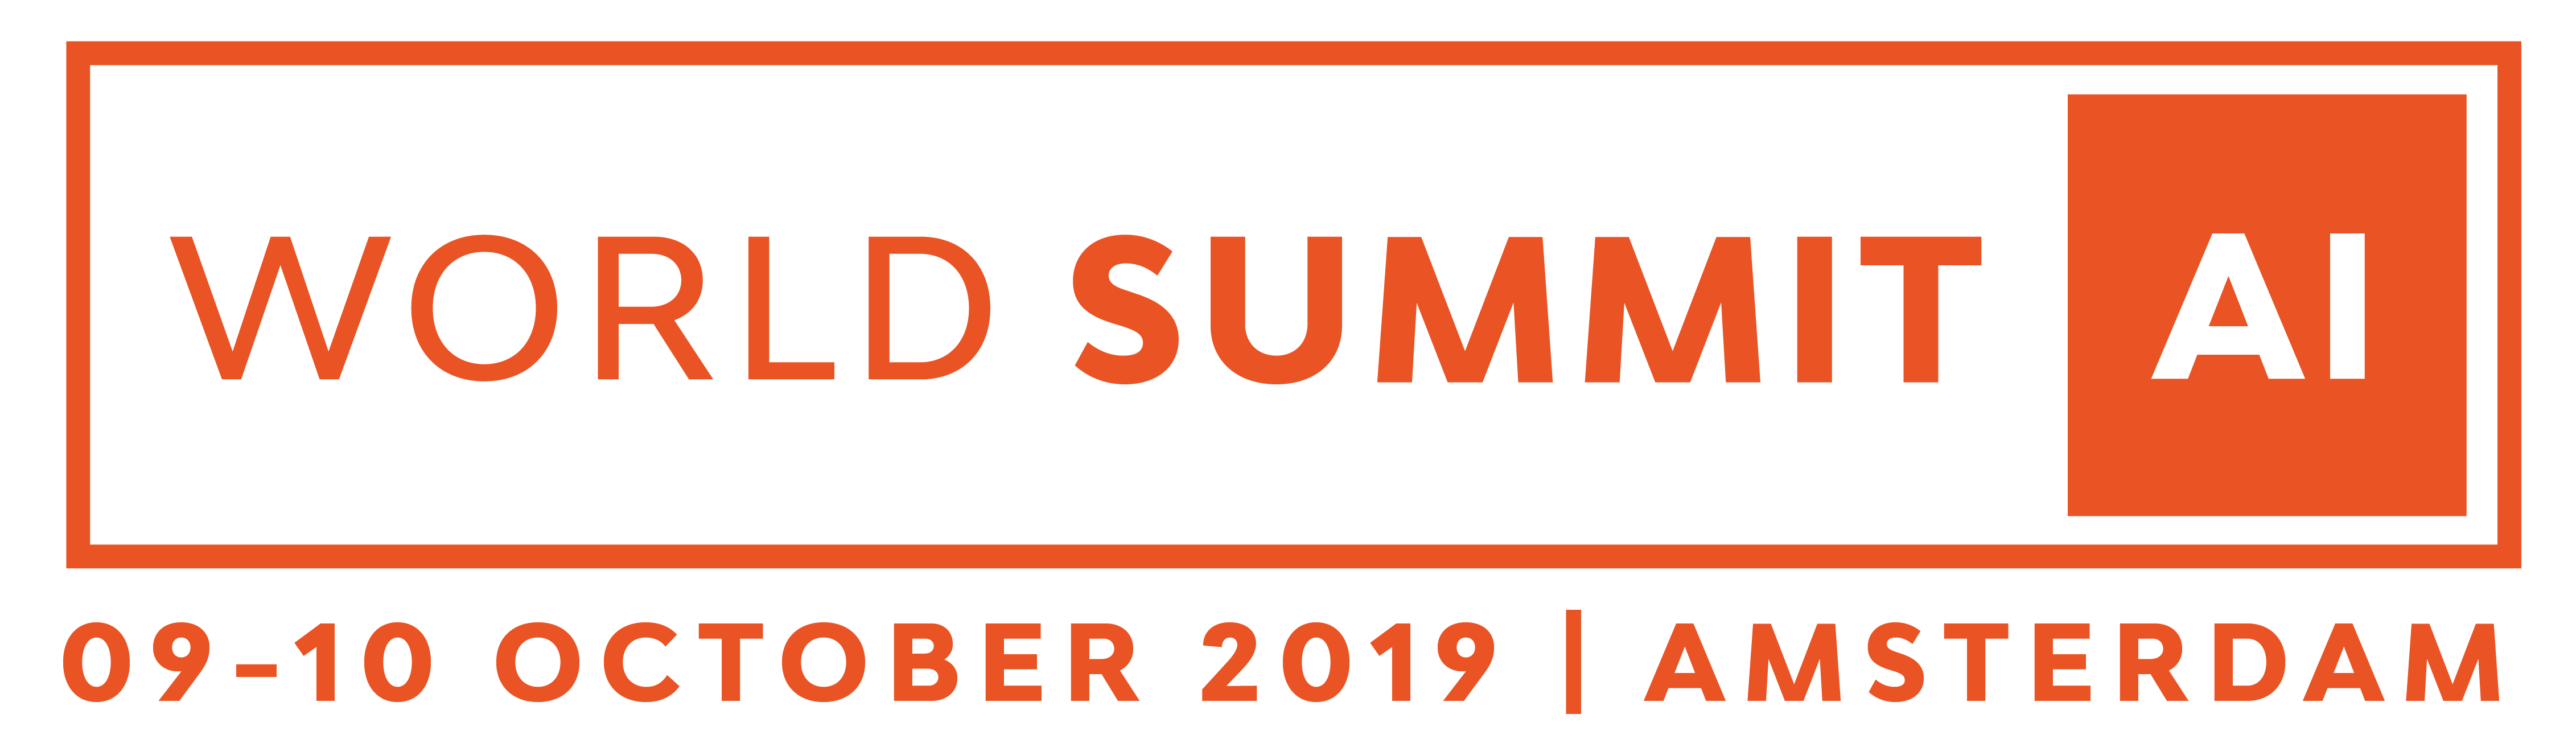 WSAI_Amsterdam 2019_with date_02